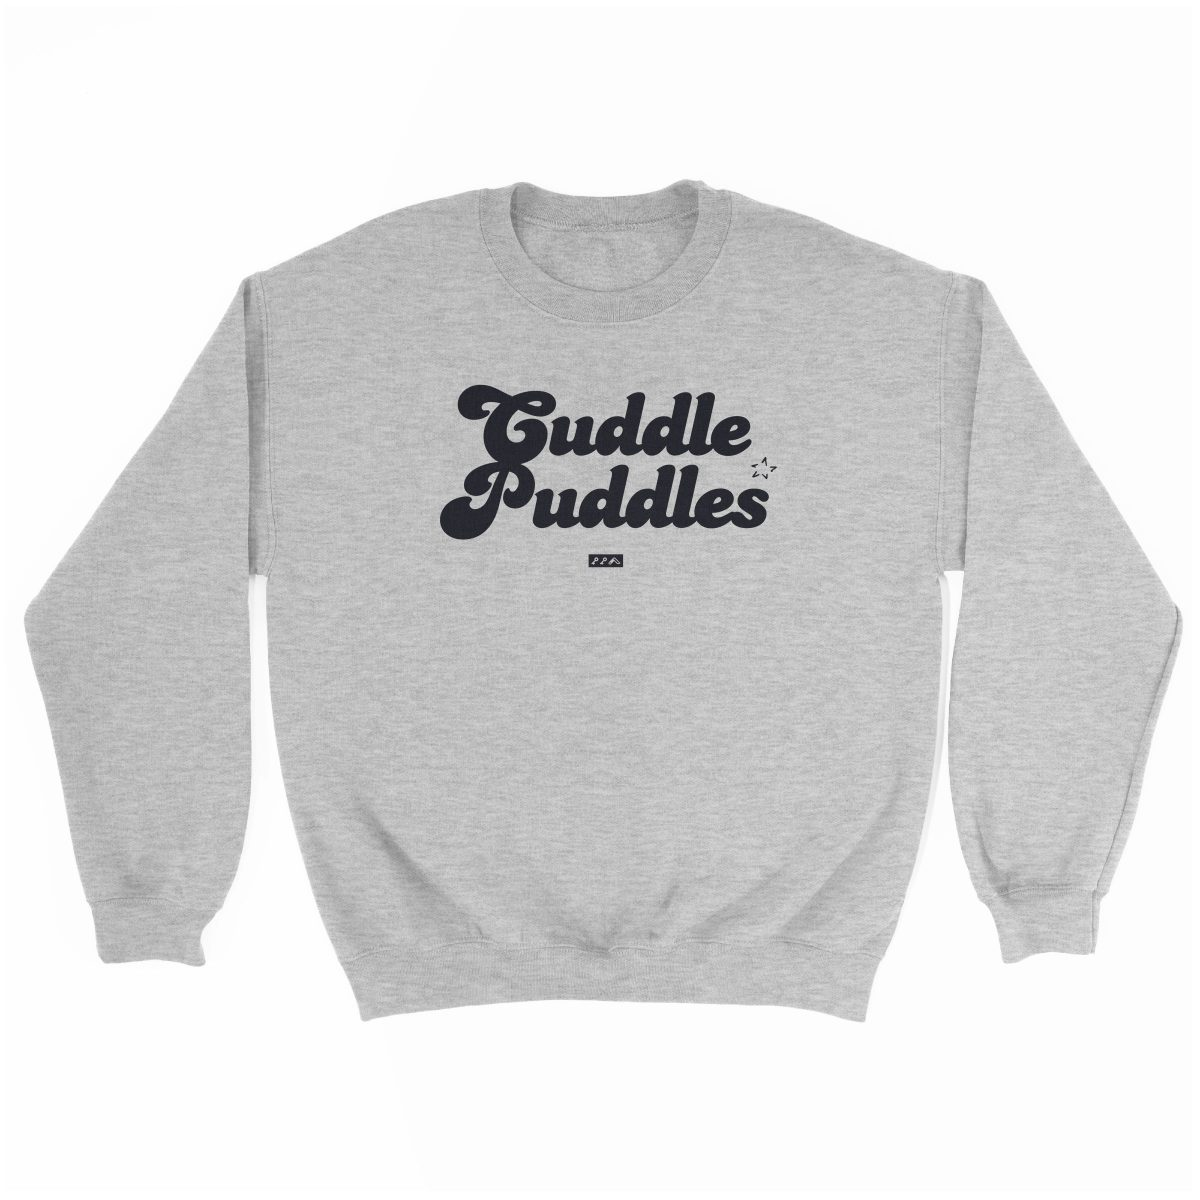 CUDDLE PUDDLE PARTY comfy sweatshirt in grey at kikicutt.com